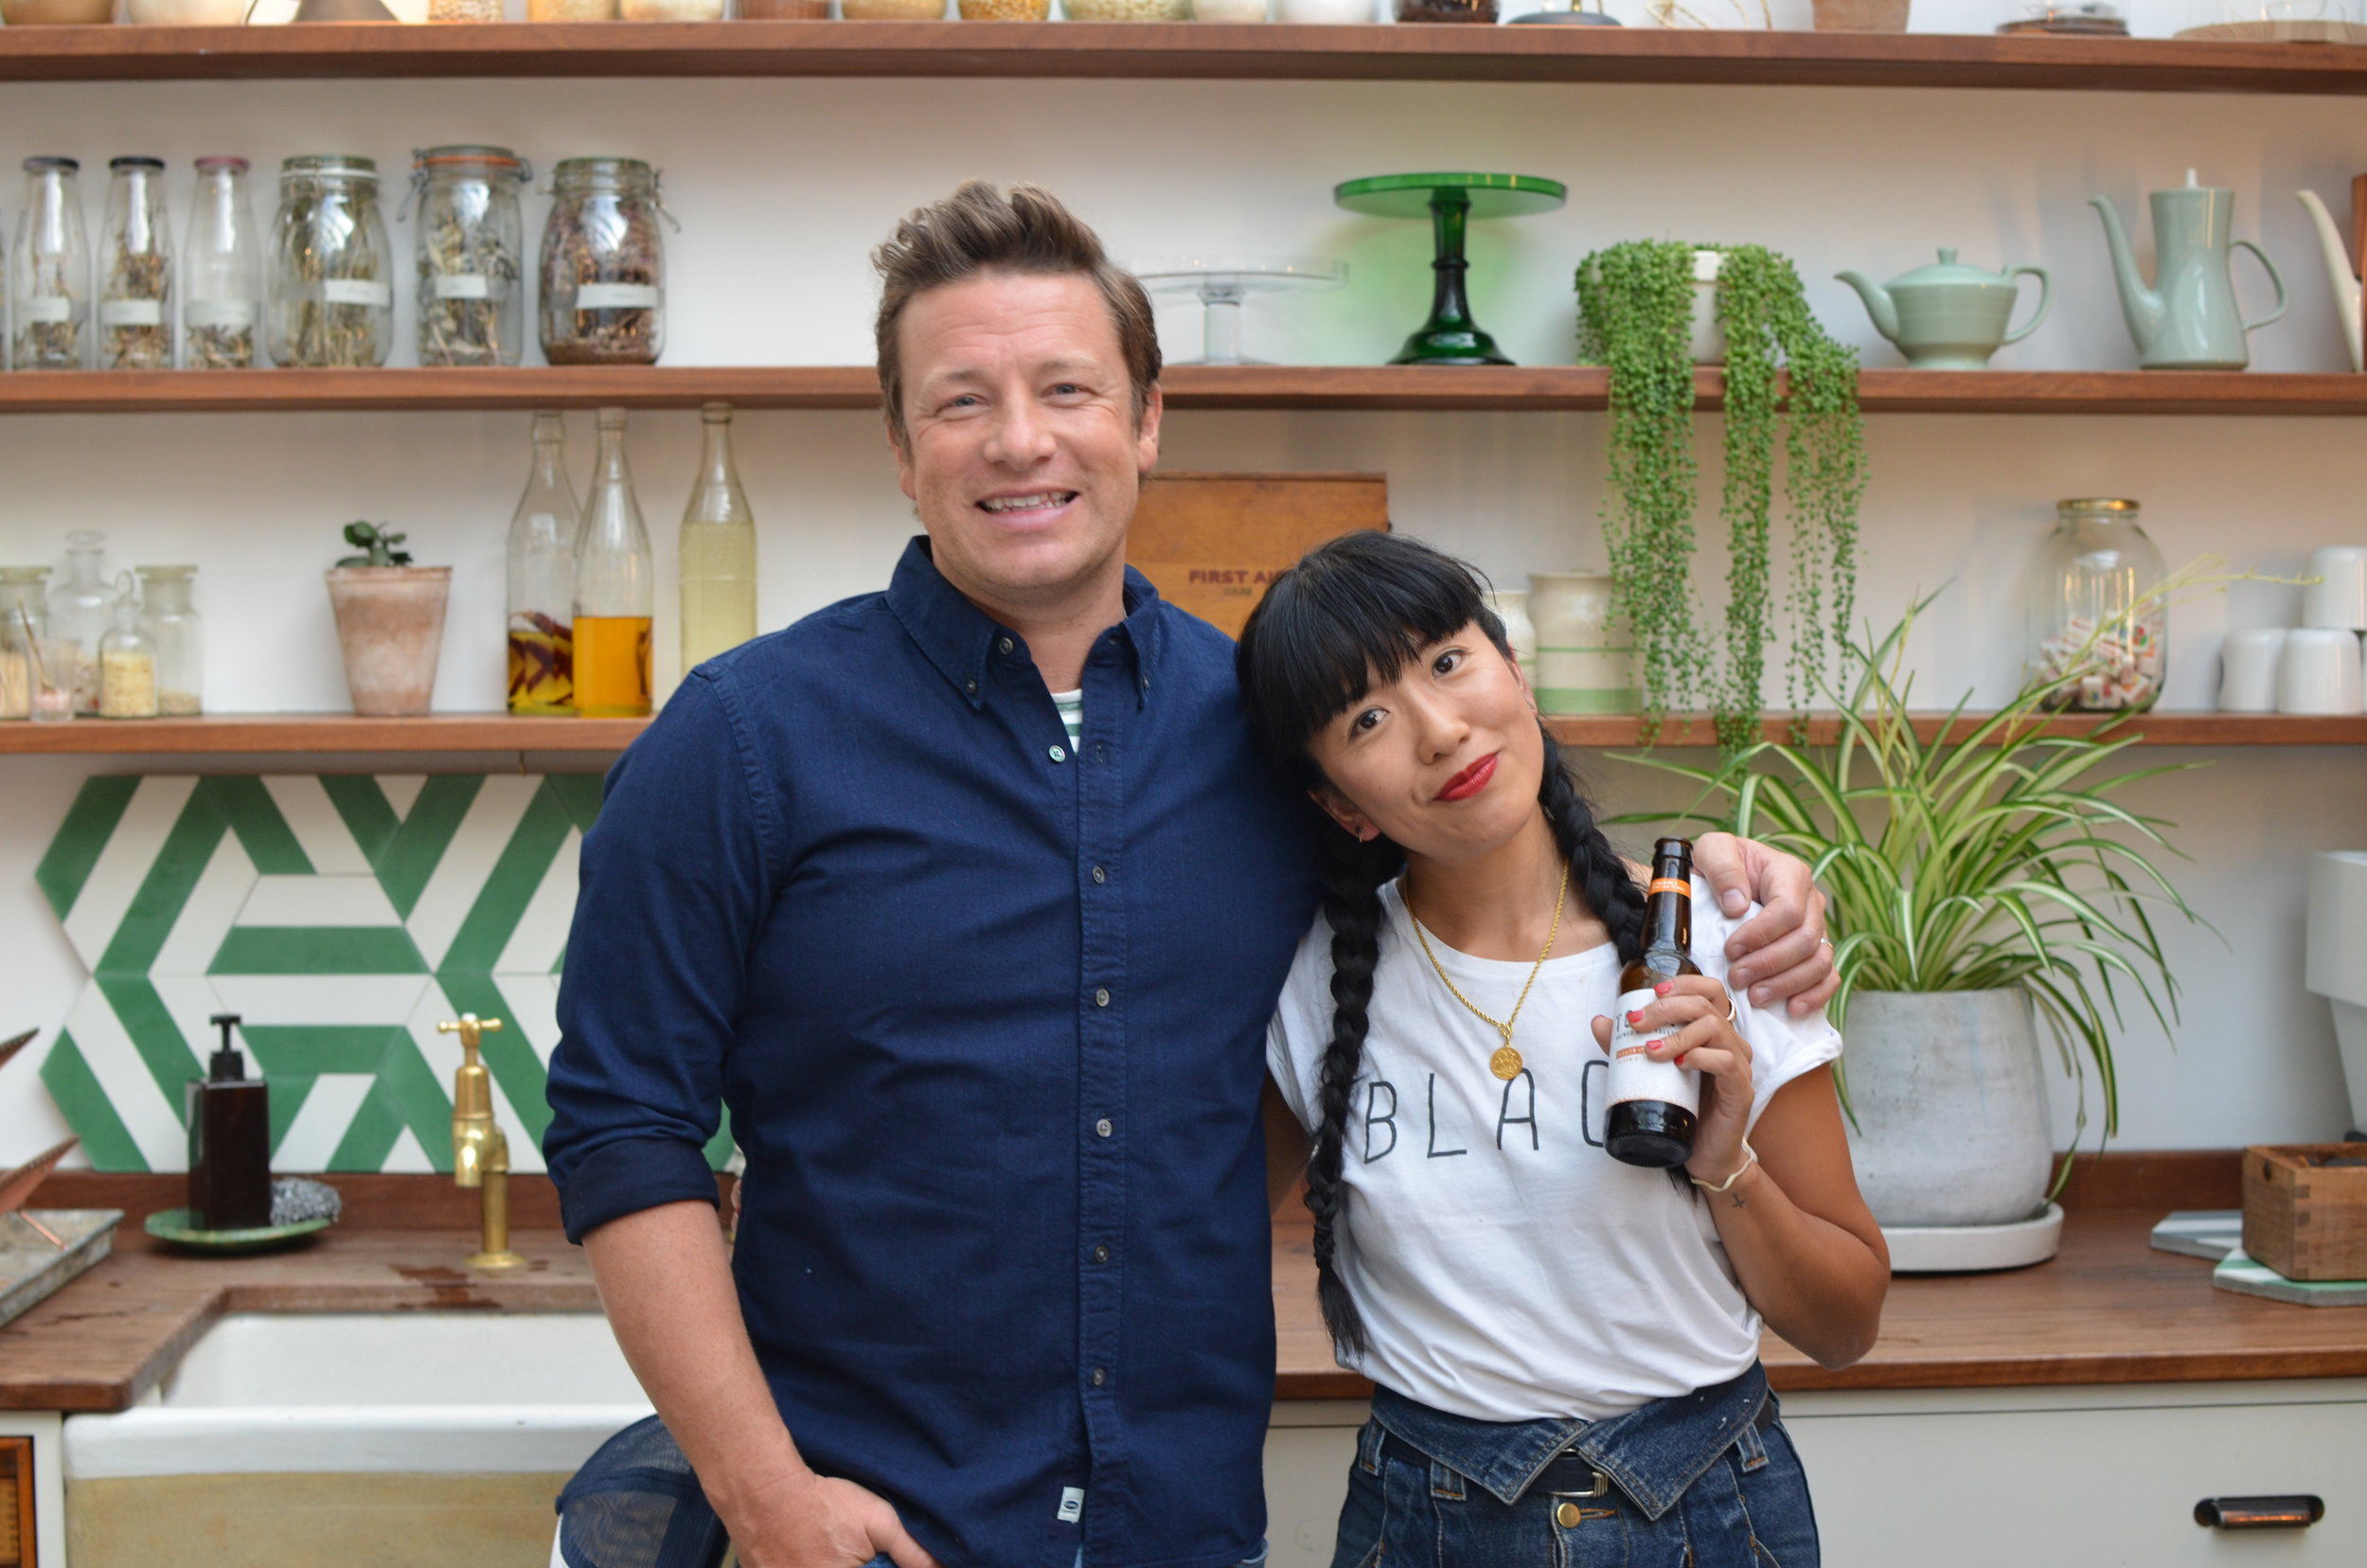 Jamie Oliver International Press Book Launch - 5 Ingredients Quick and Easy Food, Aug . 2017I was invited to make and host my The Girl in the Cafe coffee spot for Jamie Oliver's International Press launch for 5 Ingredients Quick and Easy. It was super fun.